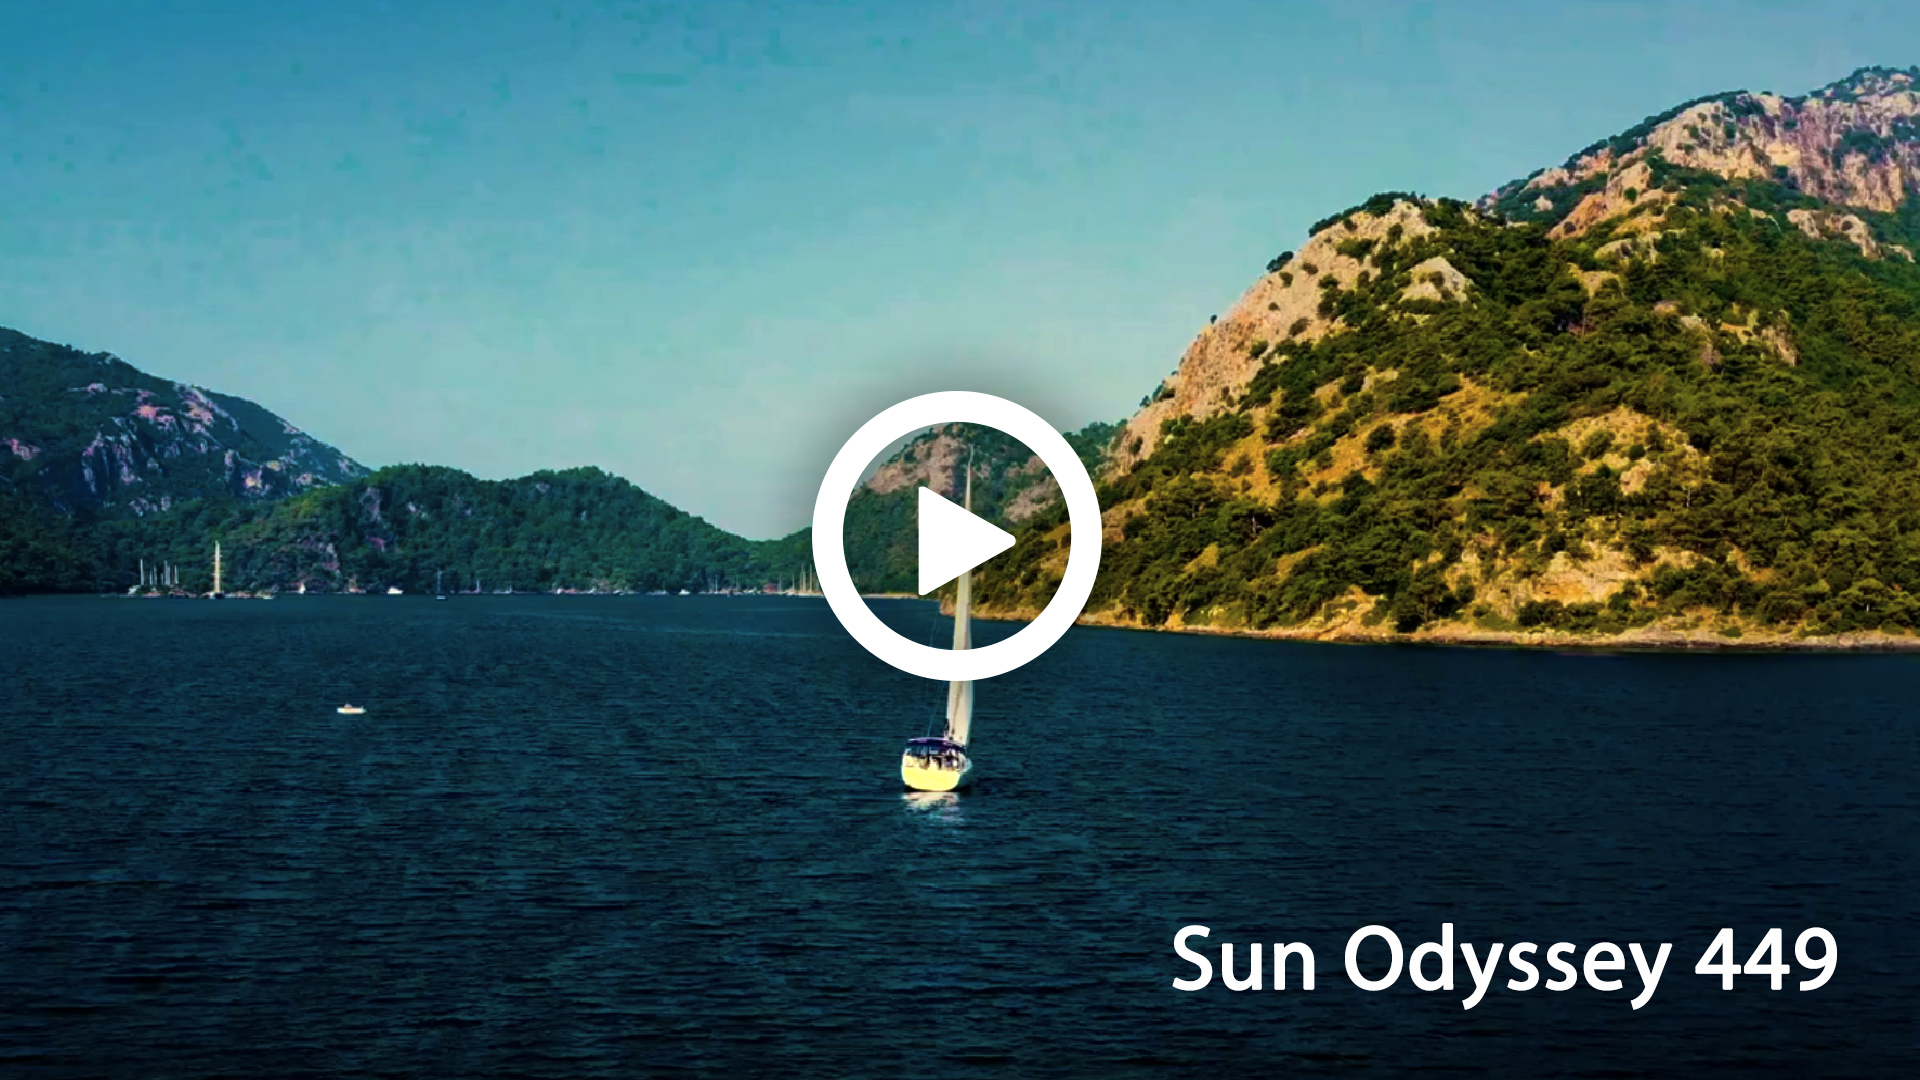 Sailing video to sale - Sun Odyssey 449 to charter